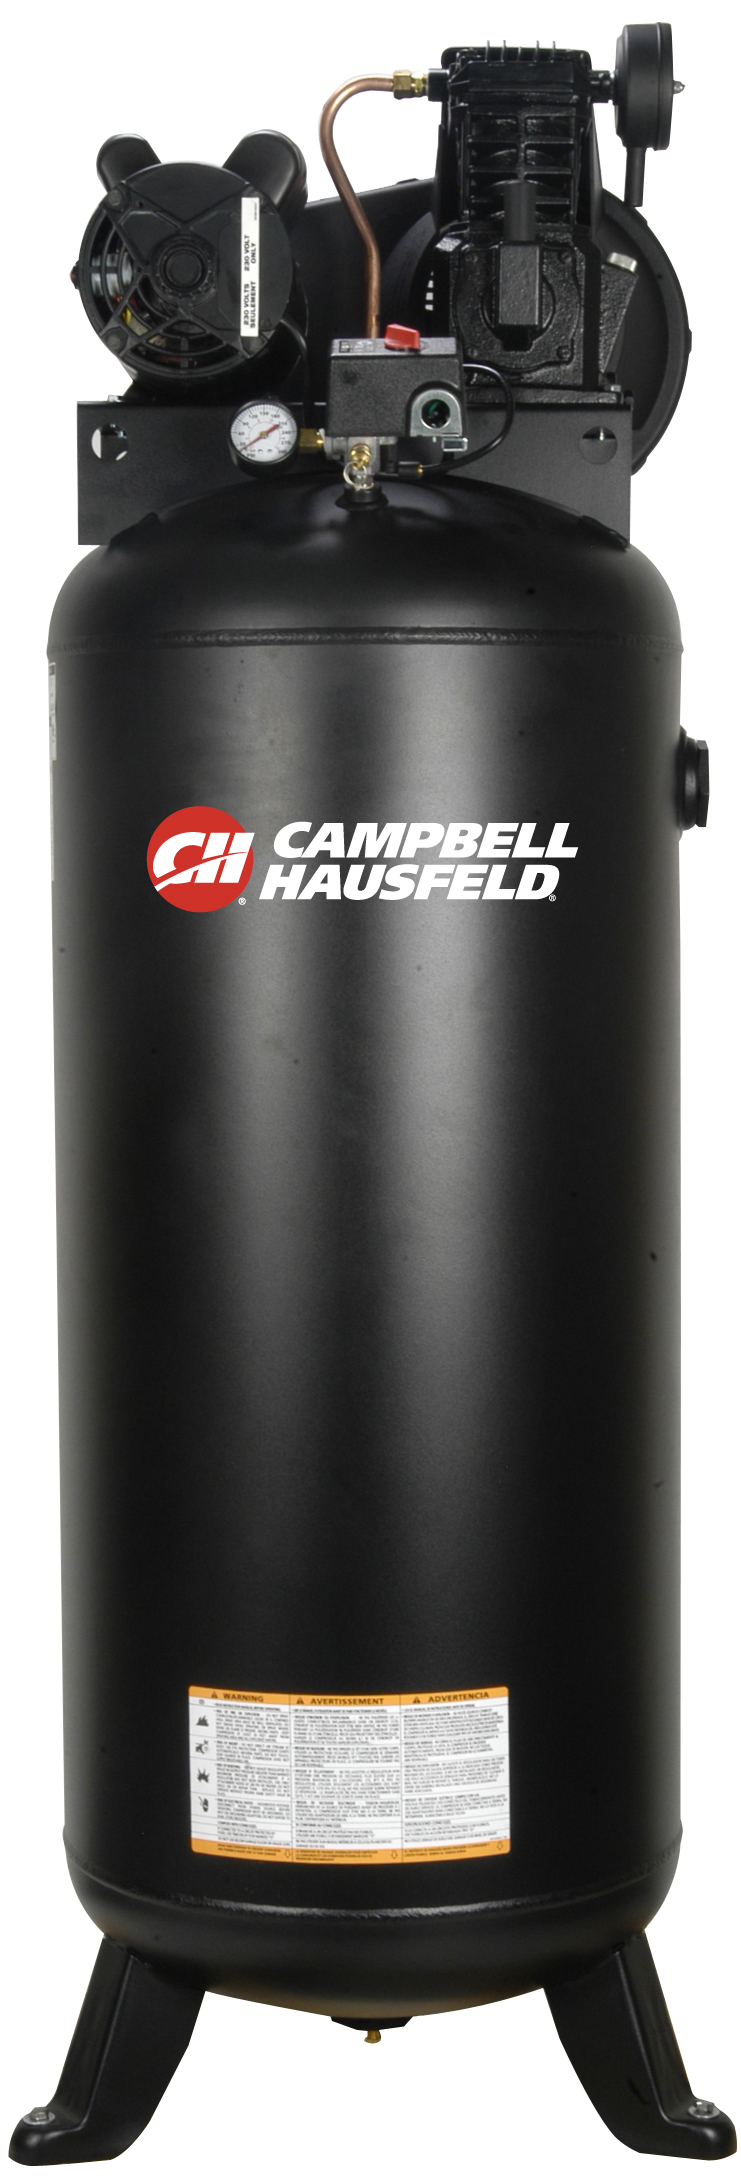 Vintage Campbell Hausfeld Air Compressor : With great poweres responsibility quotes